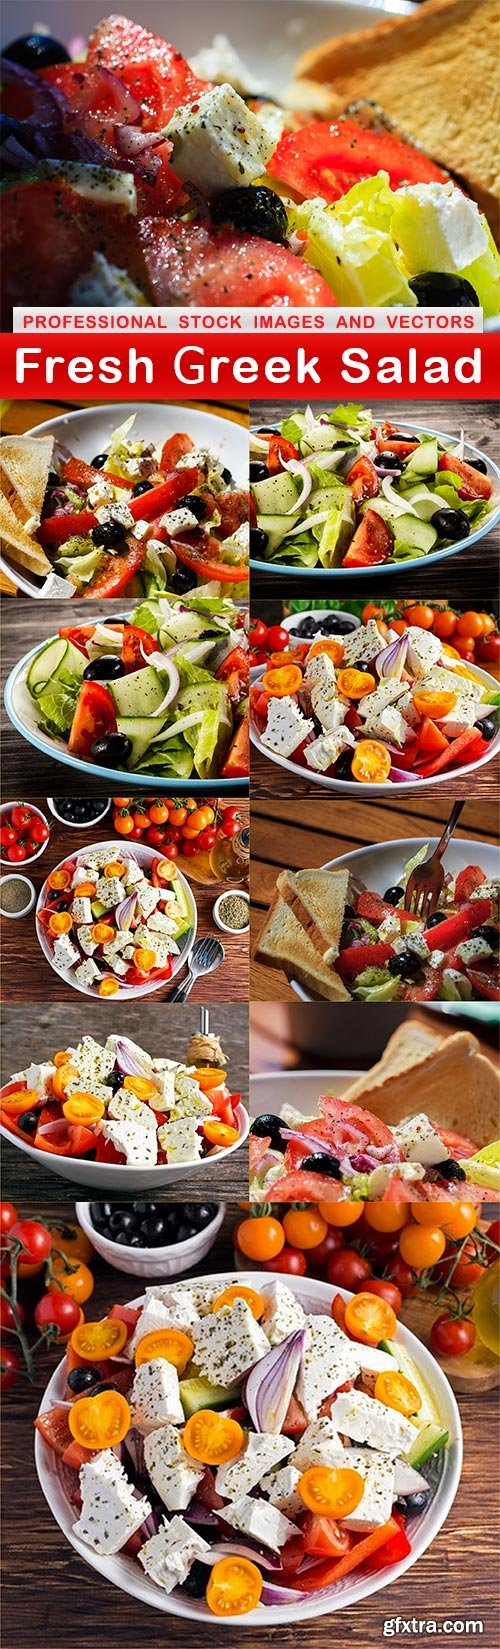 Fresh Greek Salad - 10 UHQ JPEG